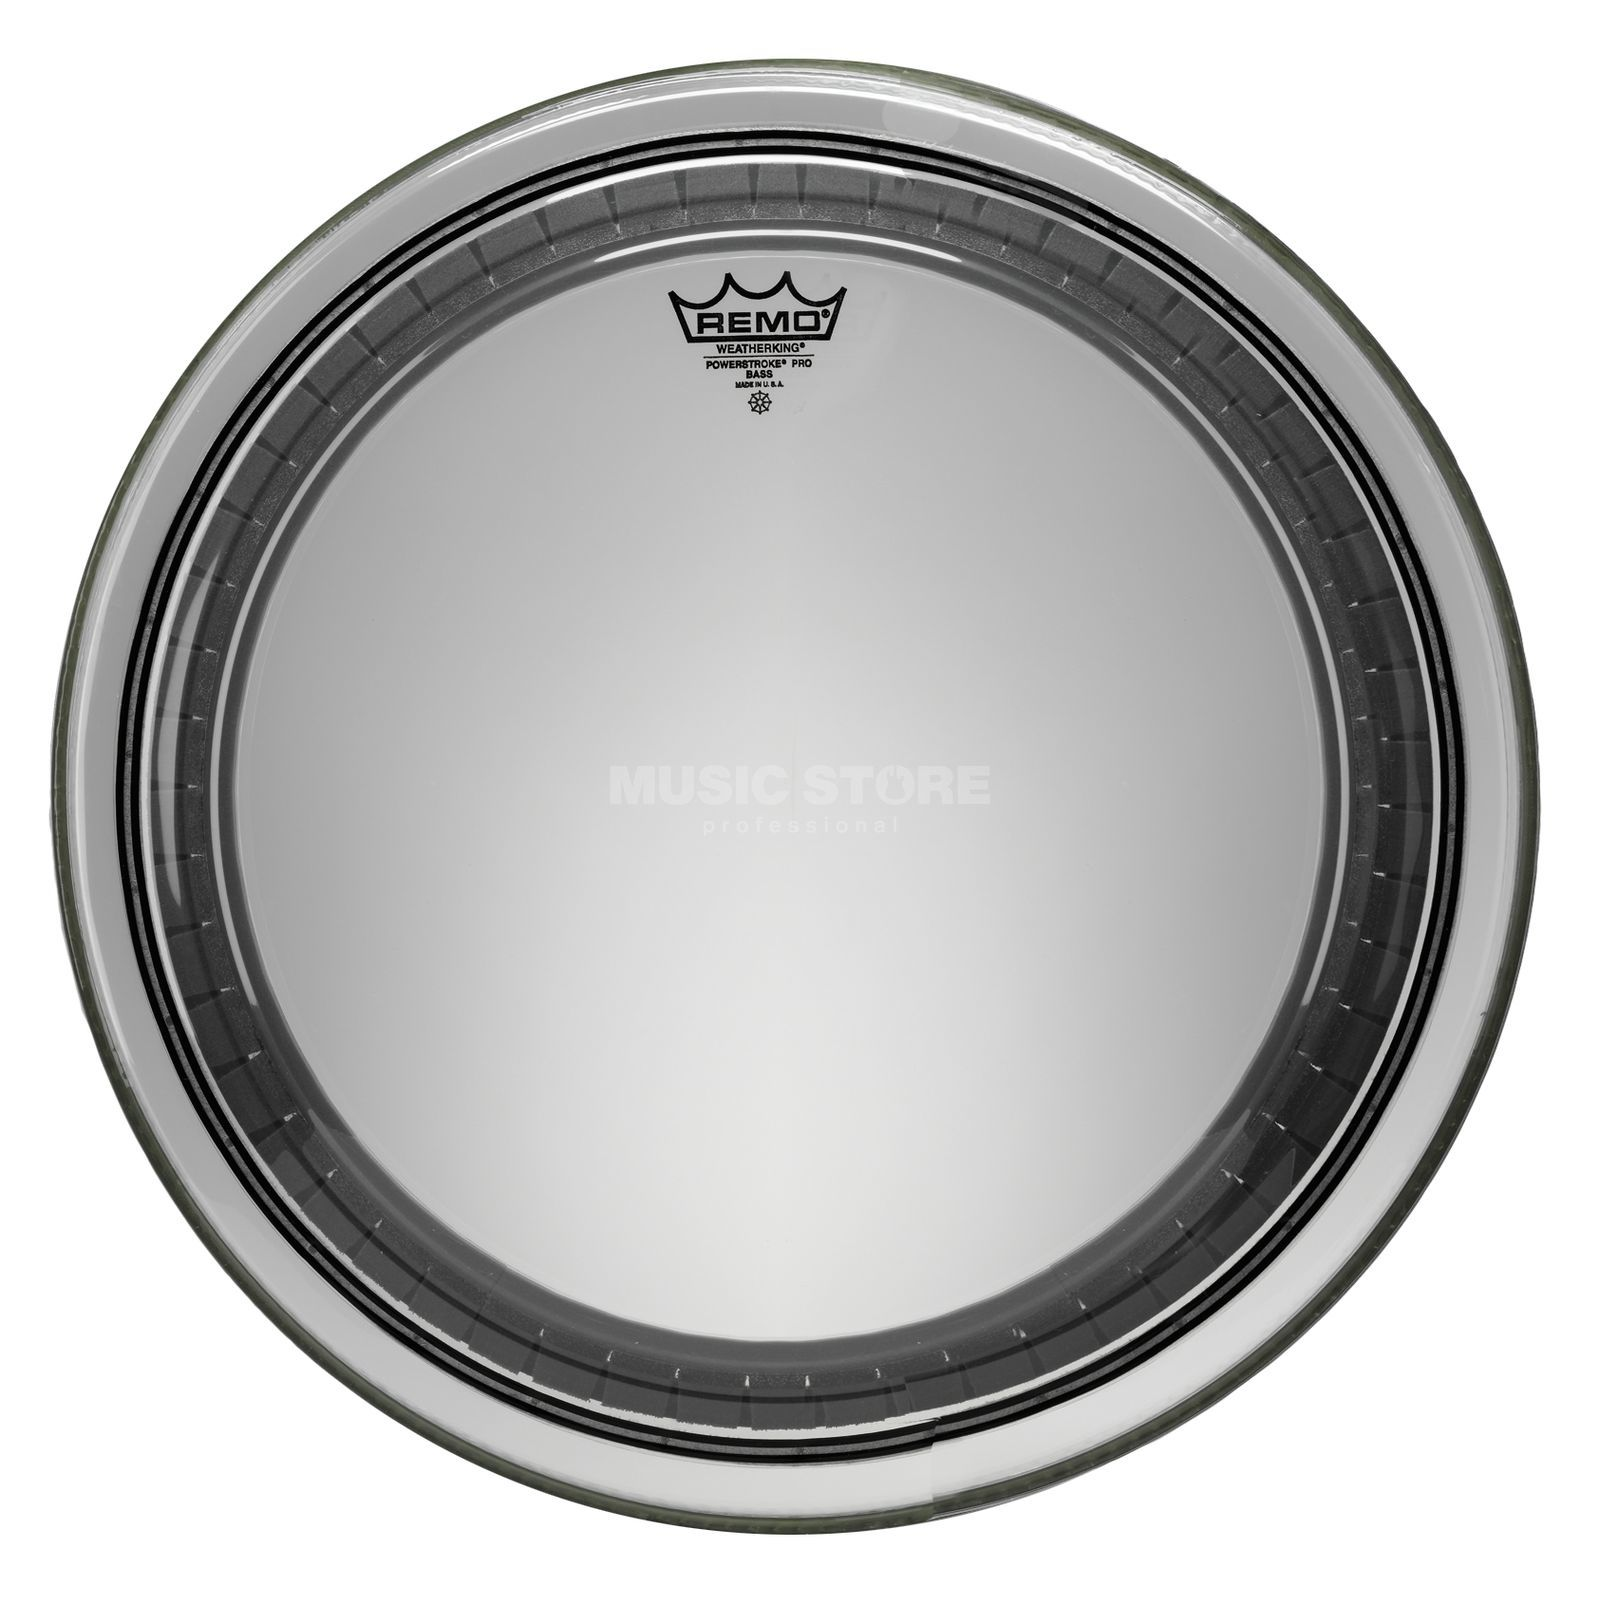 "Remo Powerstroke Pro, clear, 24"", BassDrum Batter Product Image"